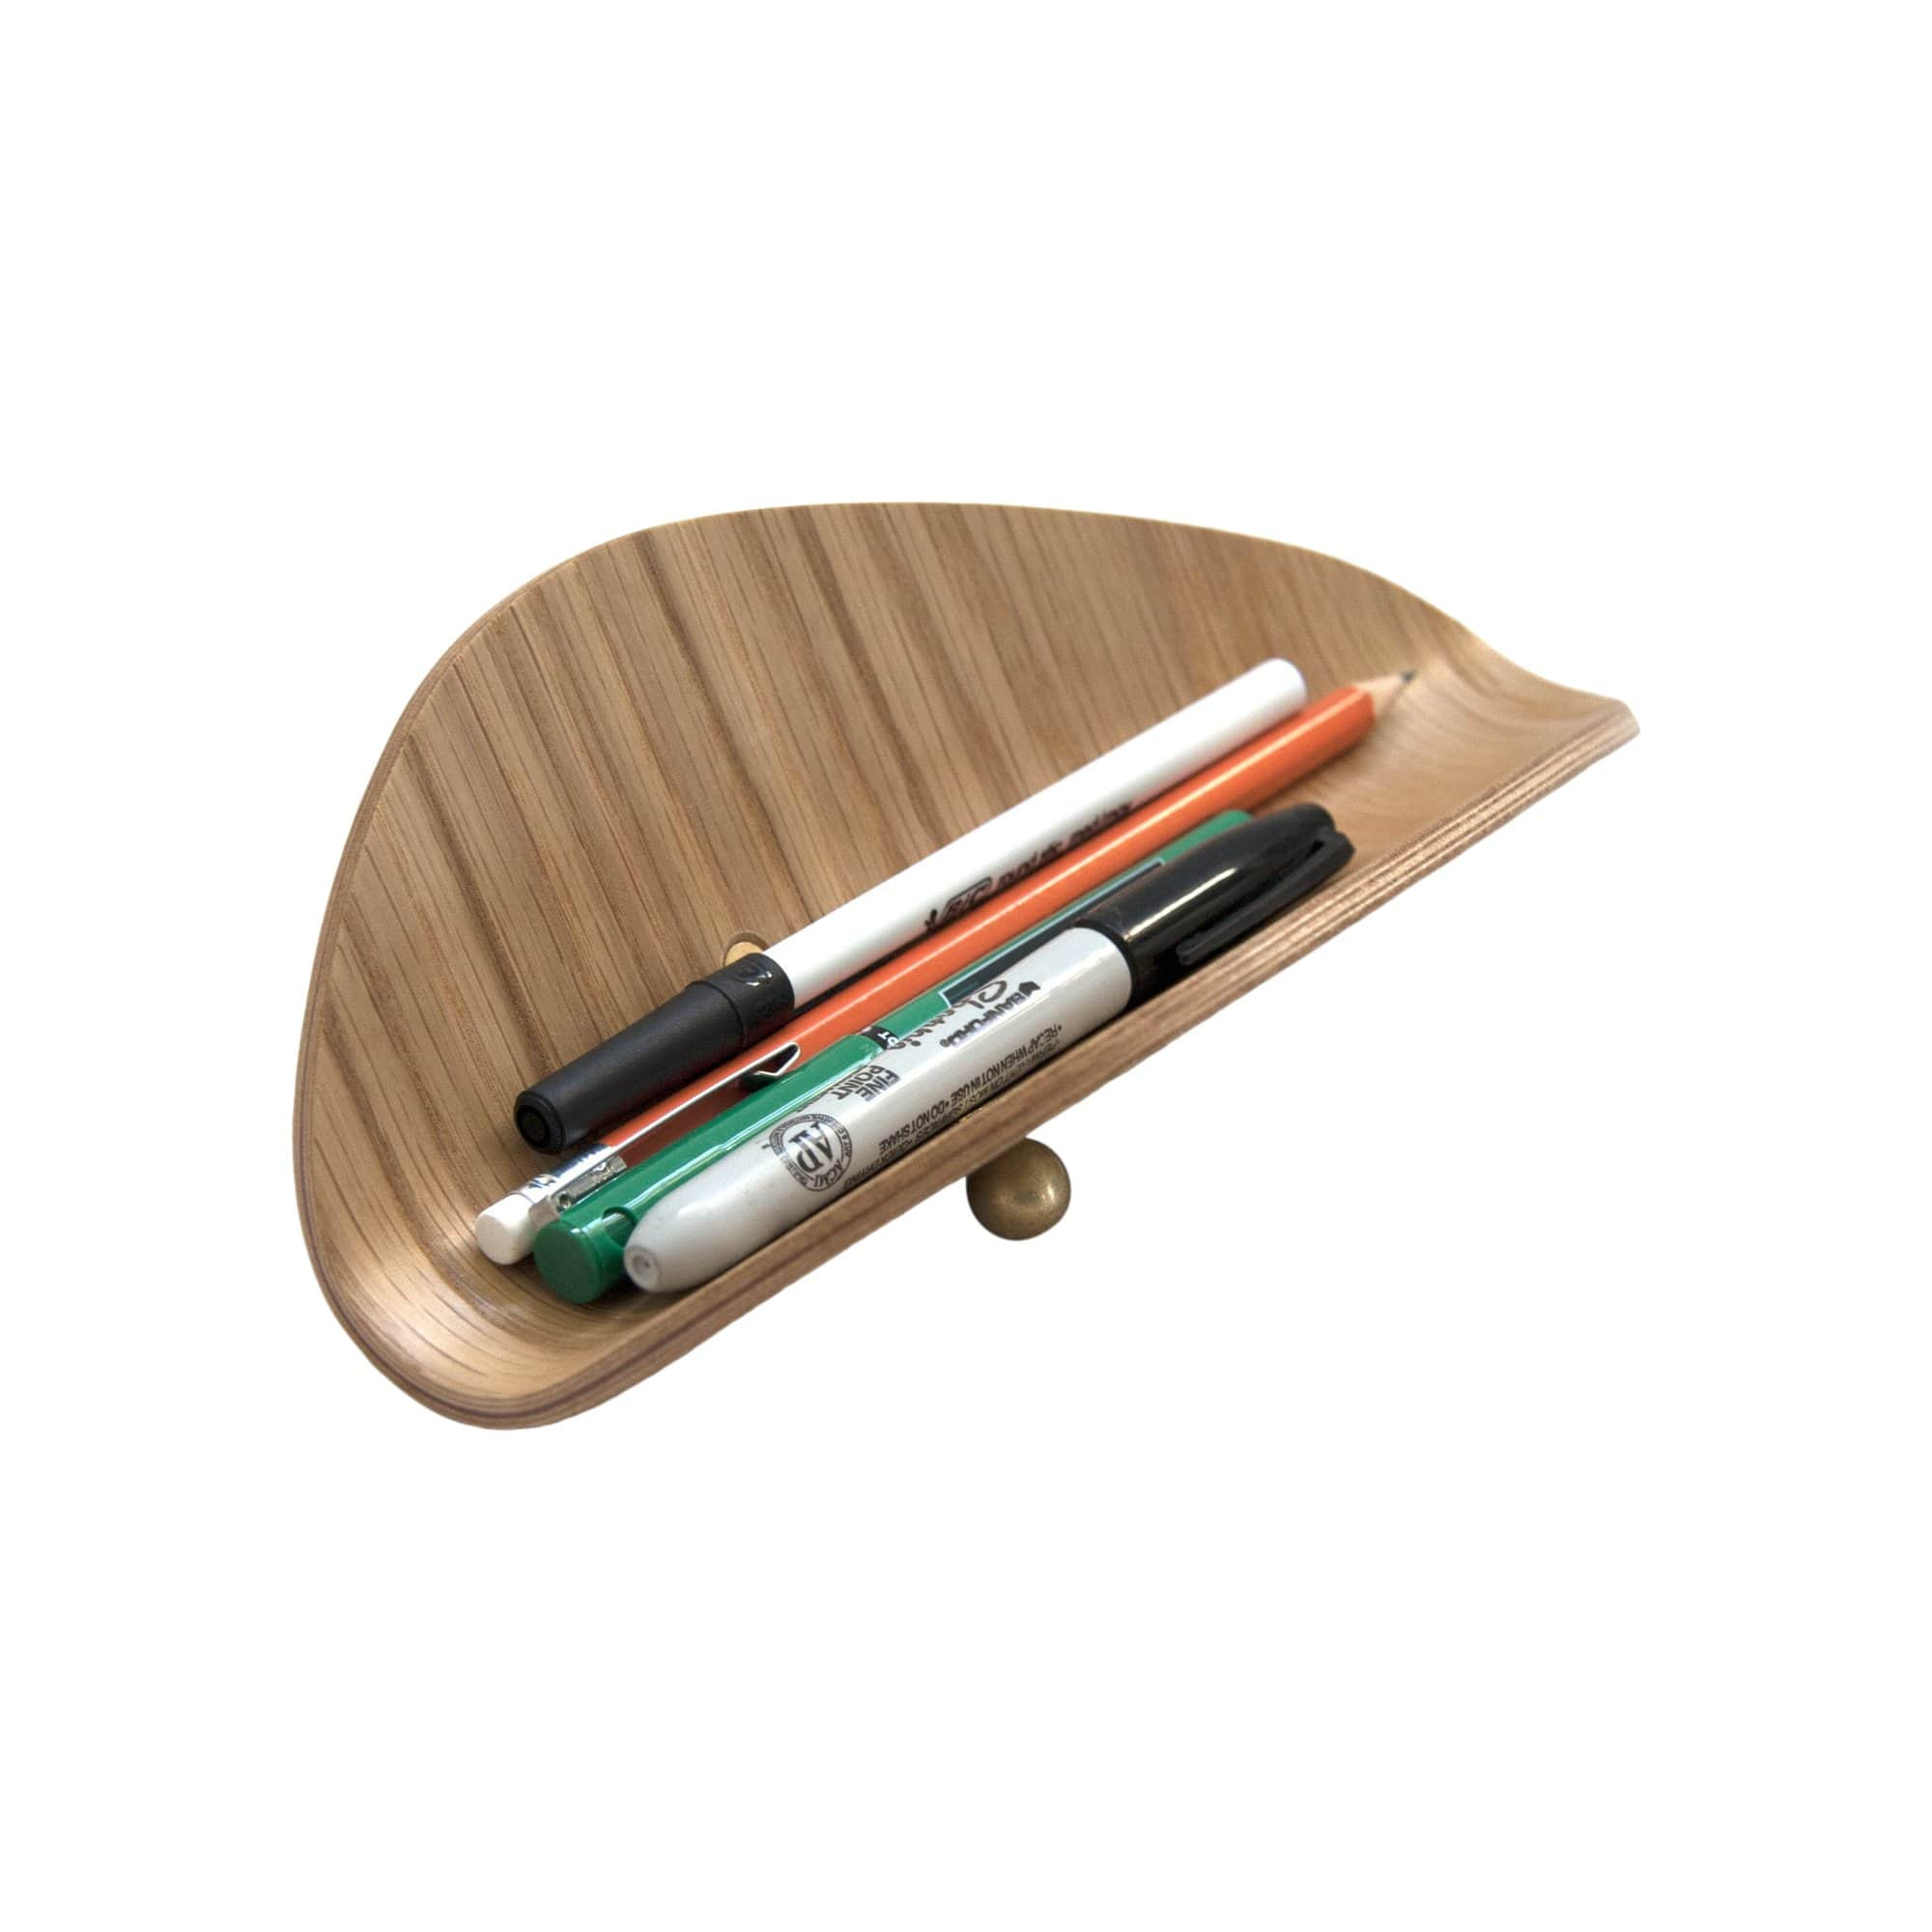 Ciseal Desk Accessories Oak / Brass Pencil Holder